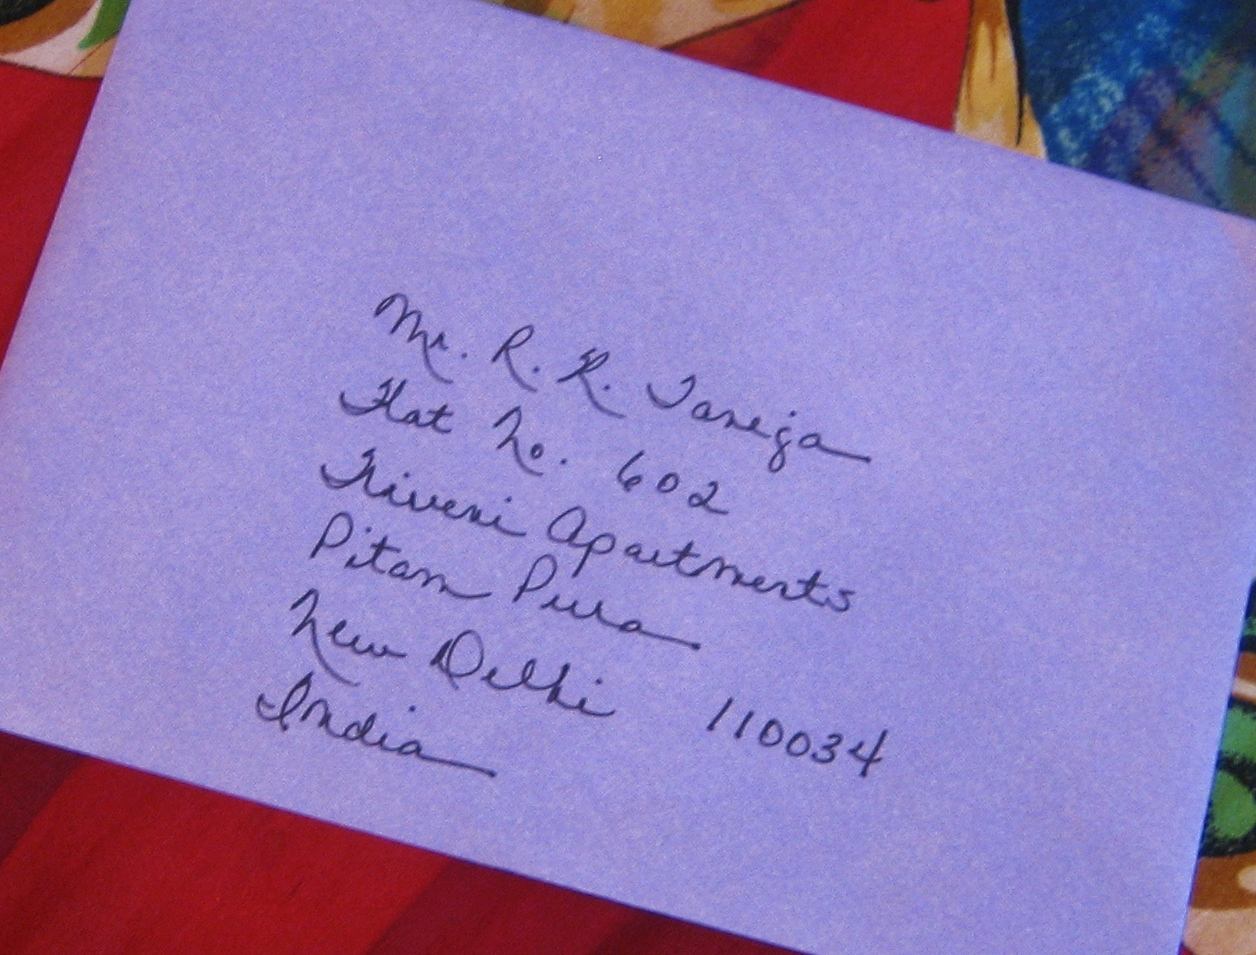 What Is The Proper Way To Address Wedding Invitations: The MoBster Diaries